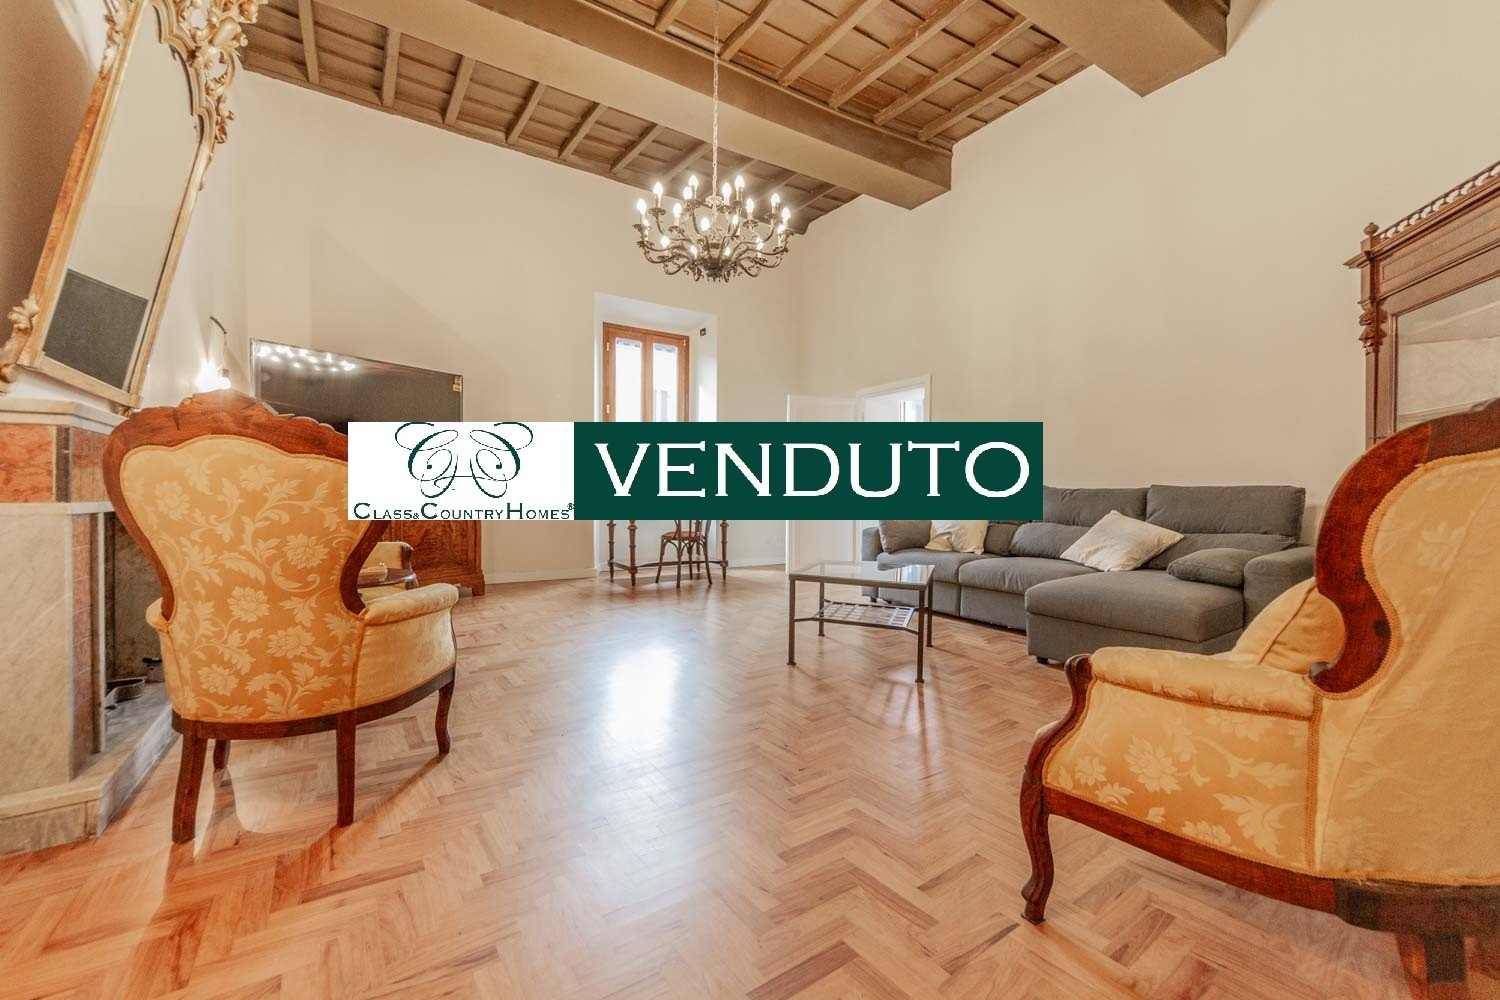 Apartment for sale Rome North Campagnano: Finely Restored 200 m2 in Historic Building a few steps from Rome